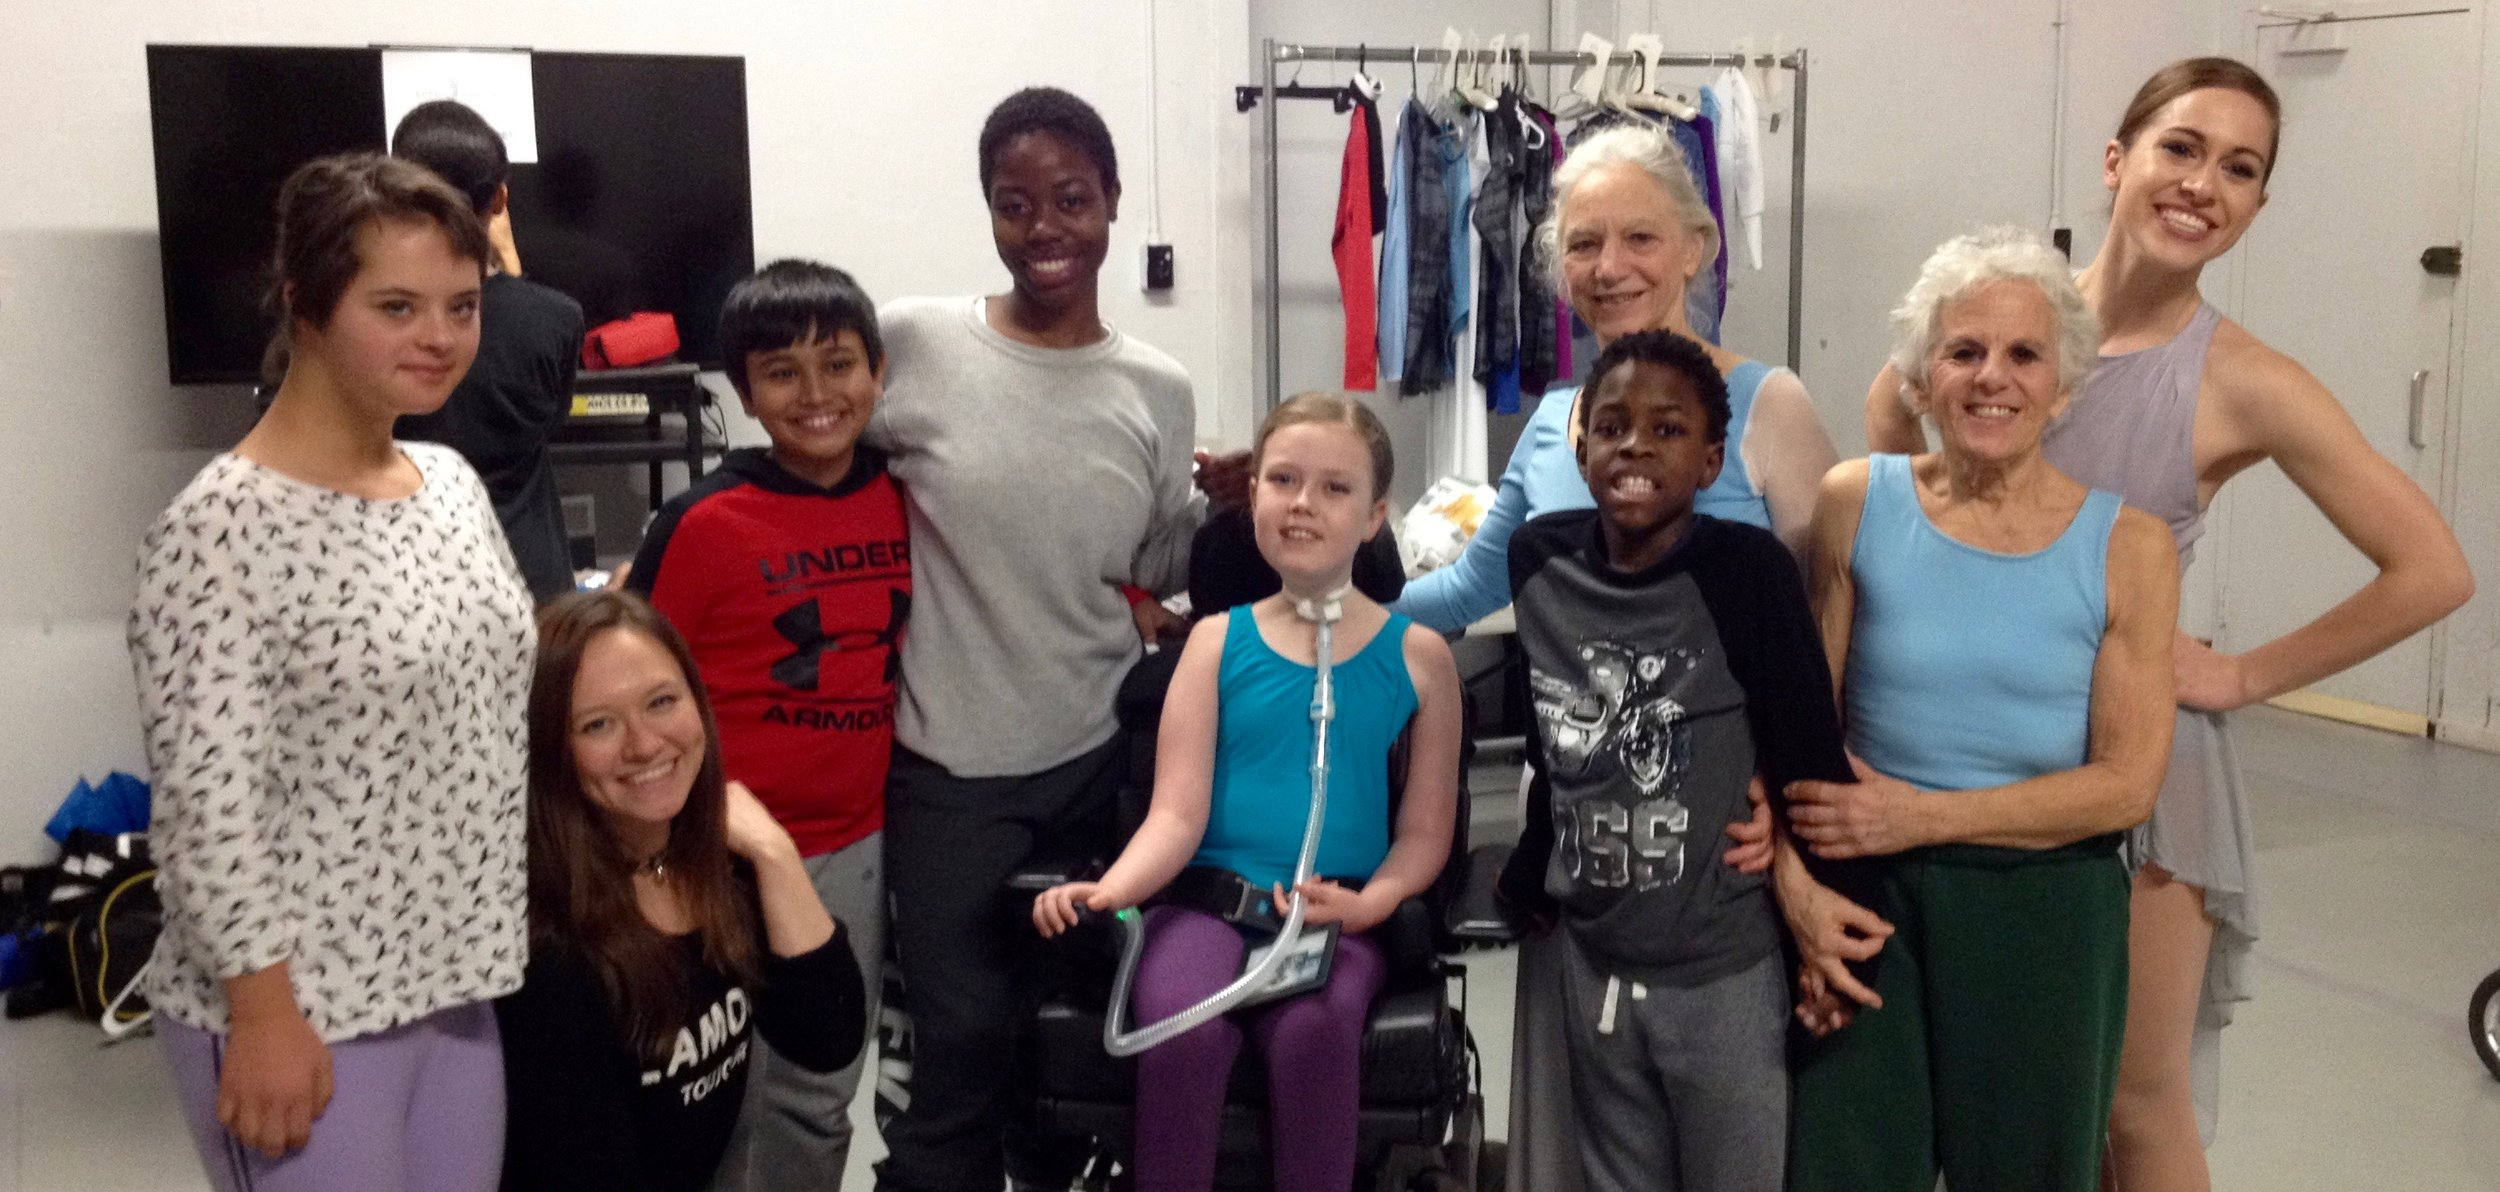 Four dancers, the Student-Coordinator, and four student-dancers posing and smiling for the camera in the dressing room.